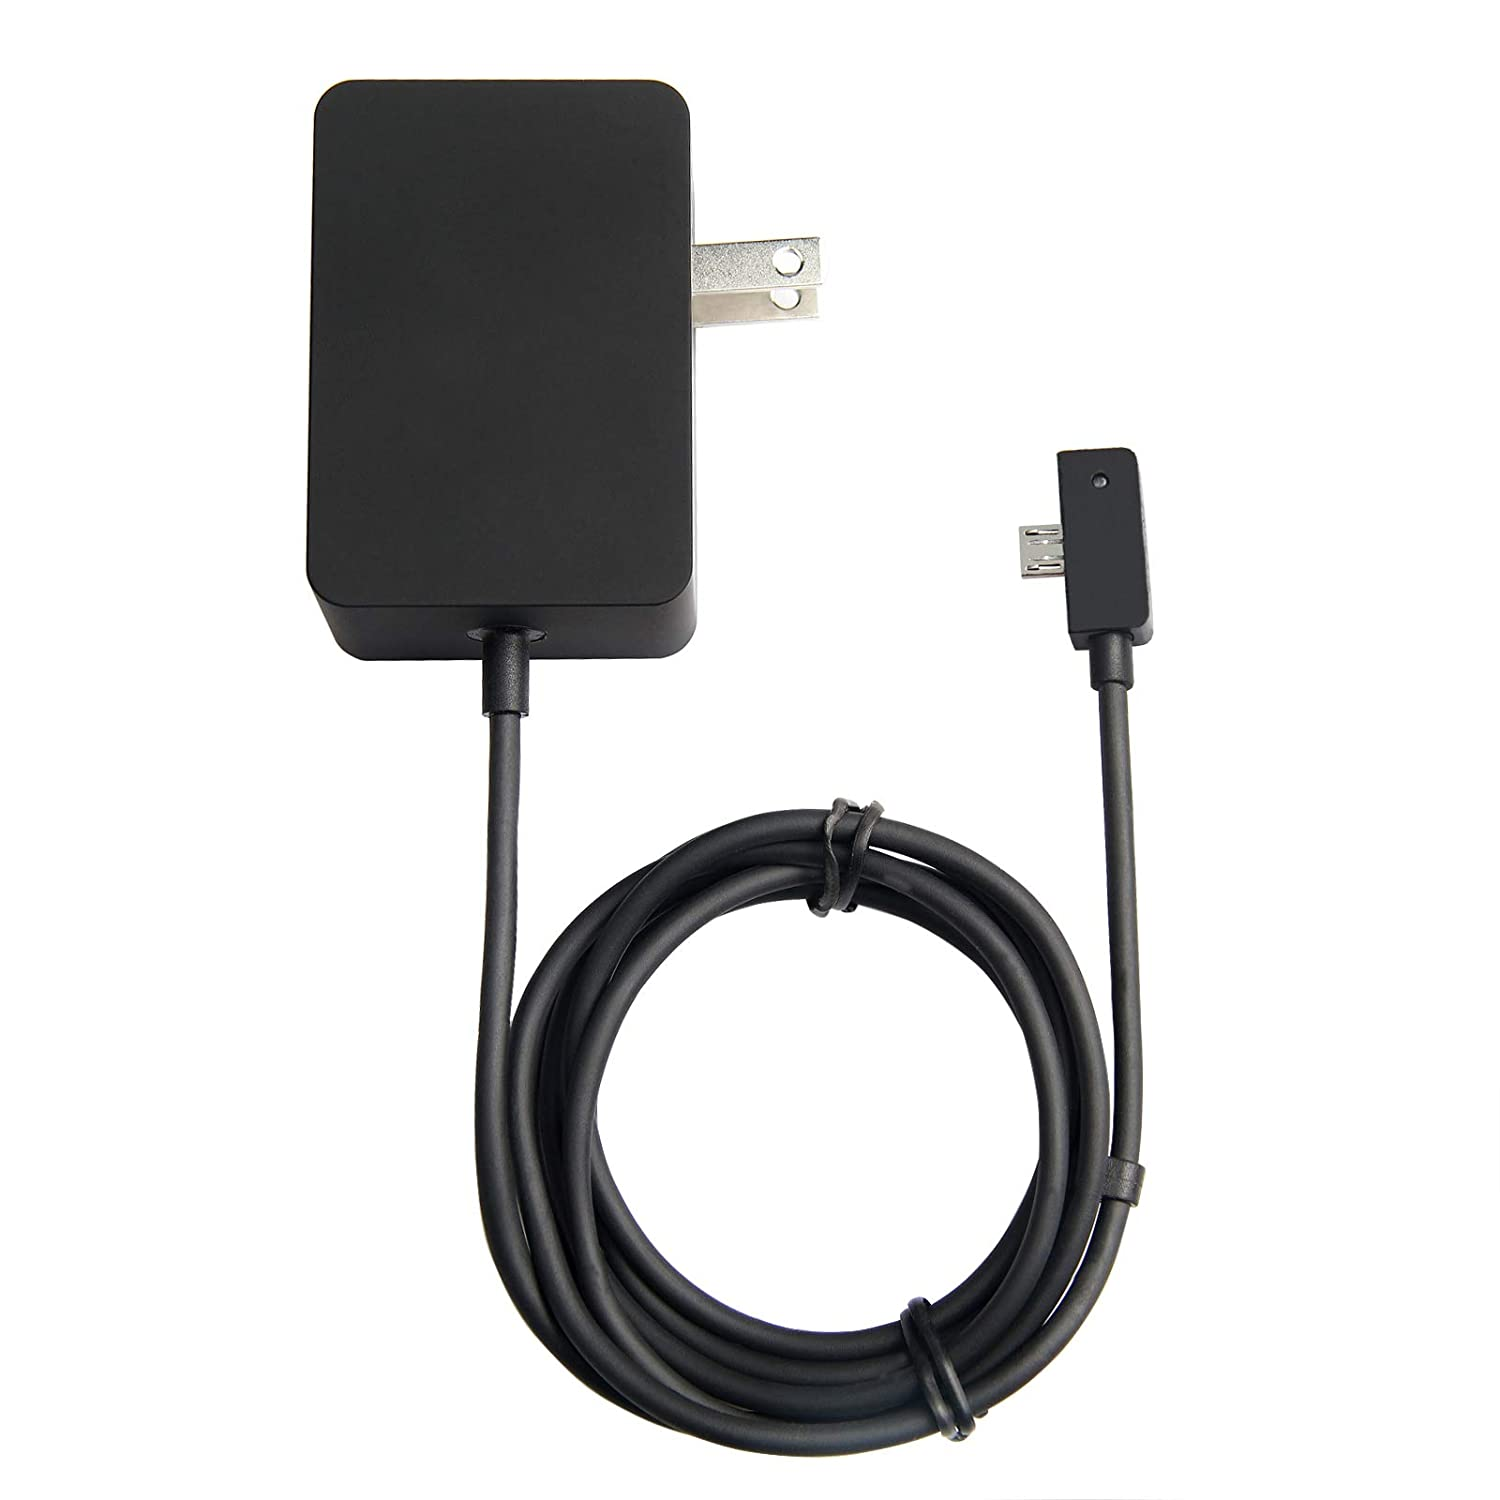 Model 1623 1624 1645 Tablet with USB Charging 13W 5.2V 2.5A Surface 3 Charger AC Power Adapter for Microsoft Surface 3 Charger Cord